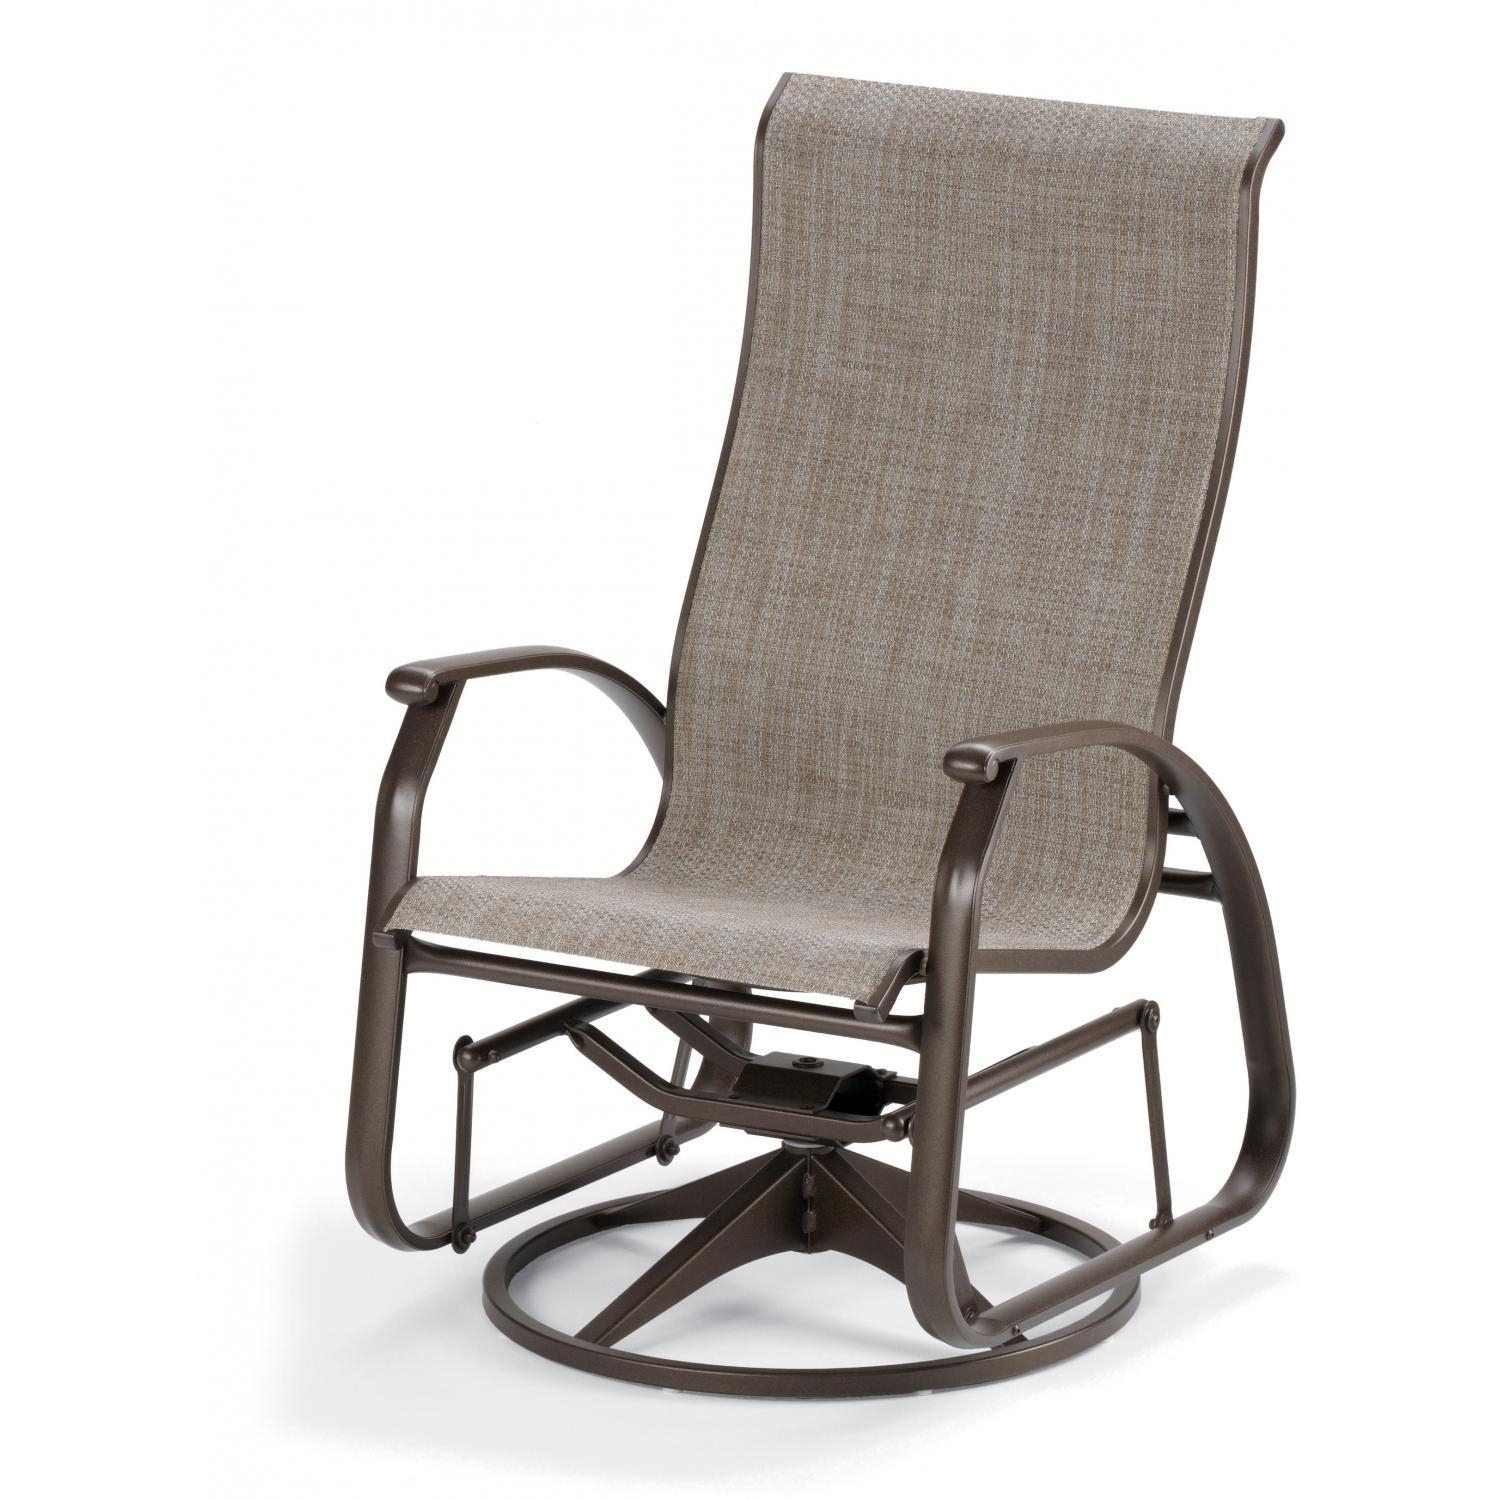 Telescope Casual Cape May Sling Patio Supreme Swivel Glider Dining Within Patio Sling Rocking Chairs (View 5 of 15)